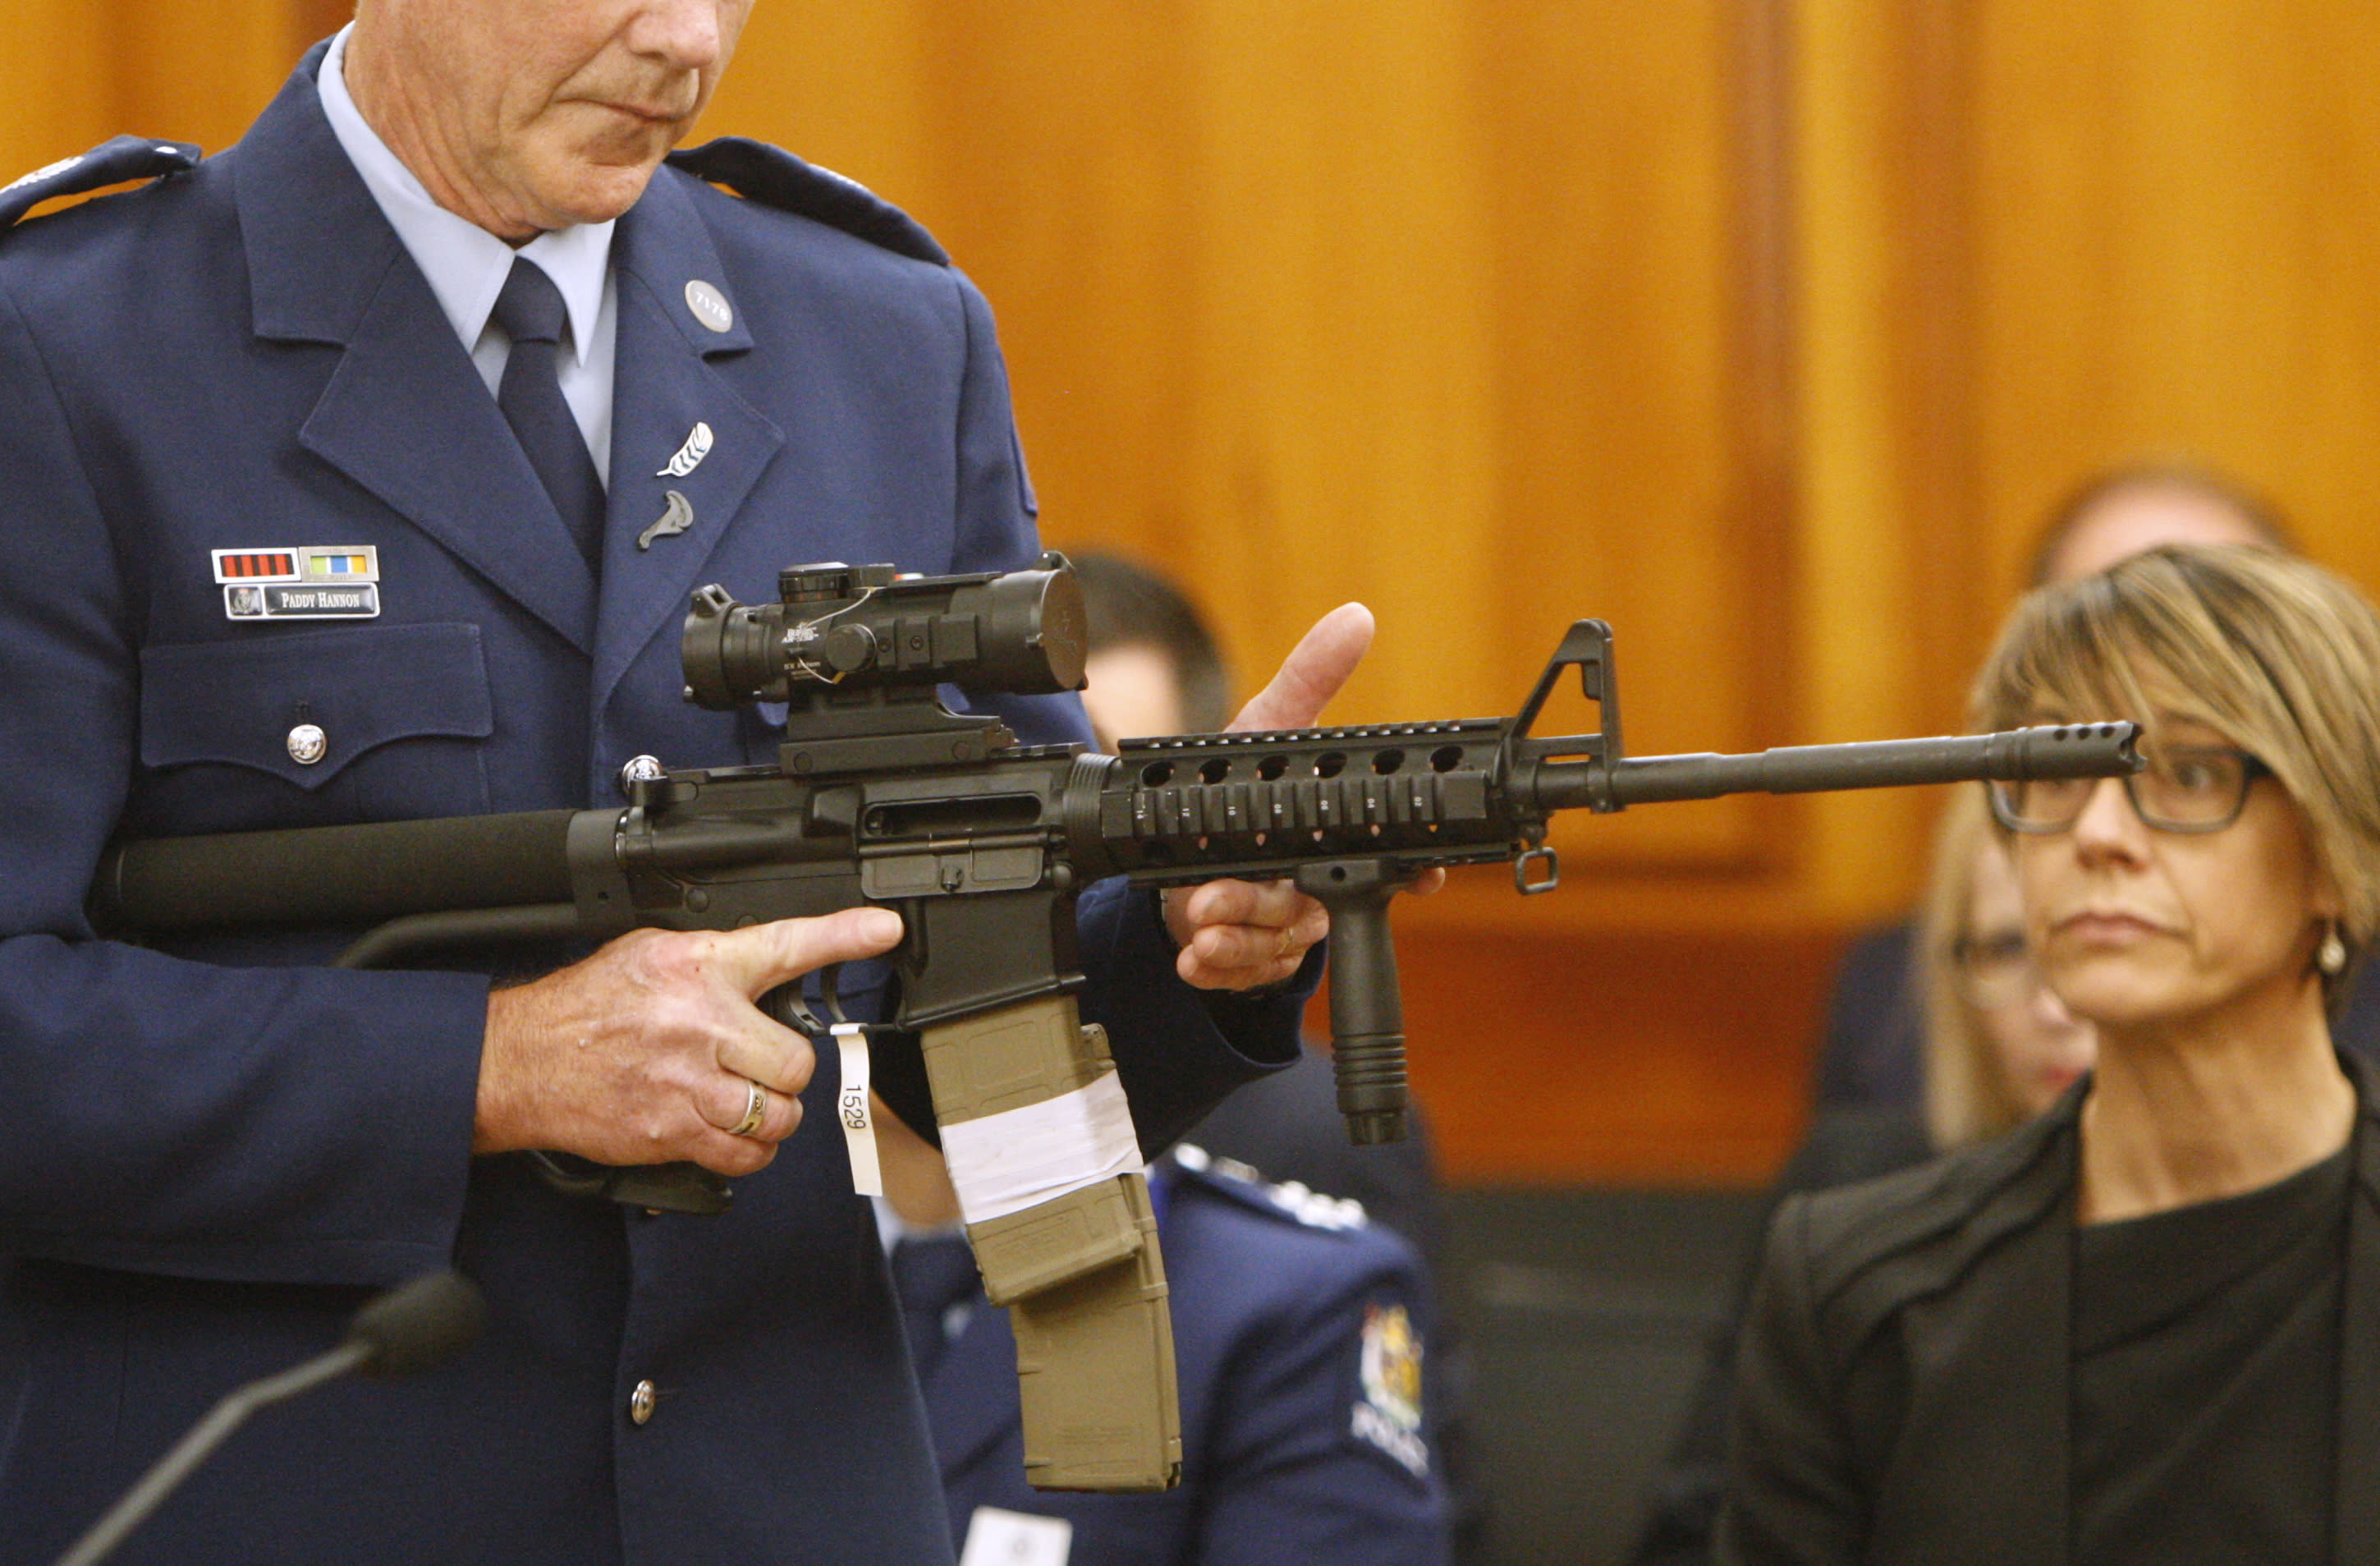 New Zealand Gun Owners Forced to Hand In Firearms, Shortchanged by 'Buyback'